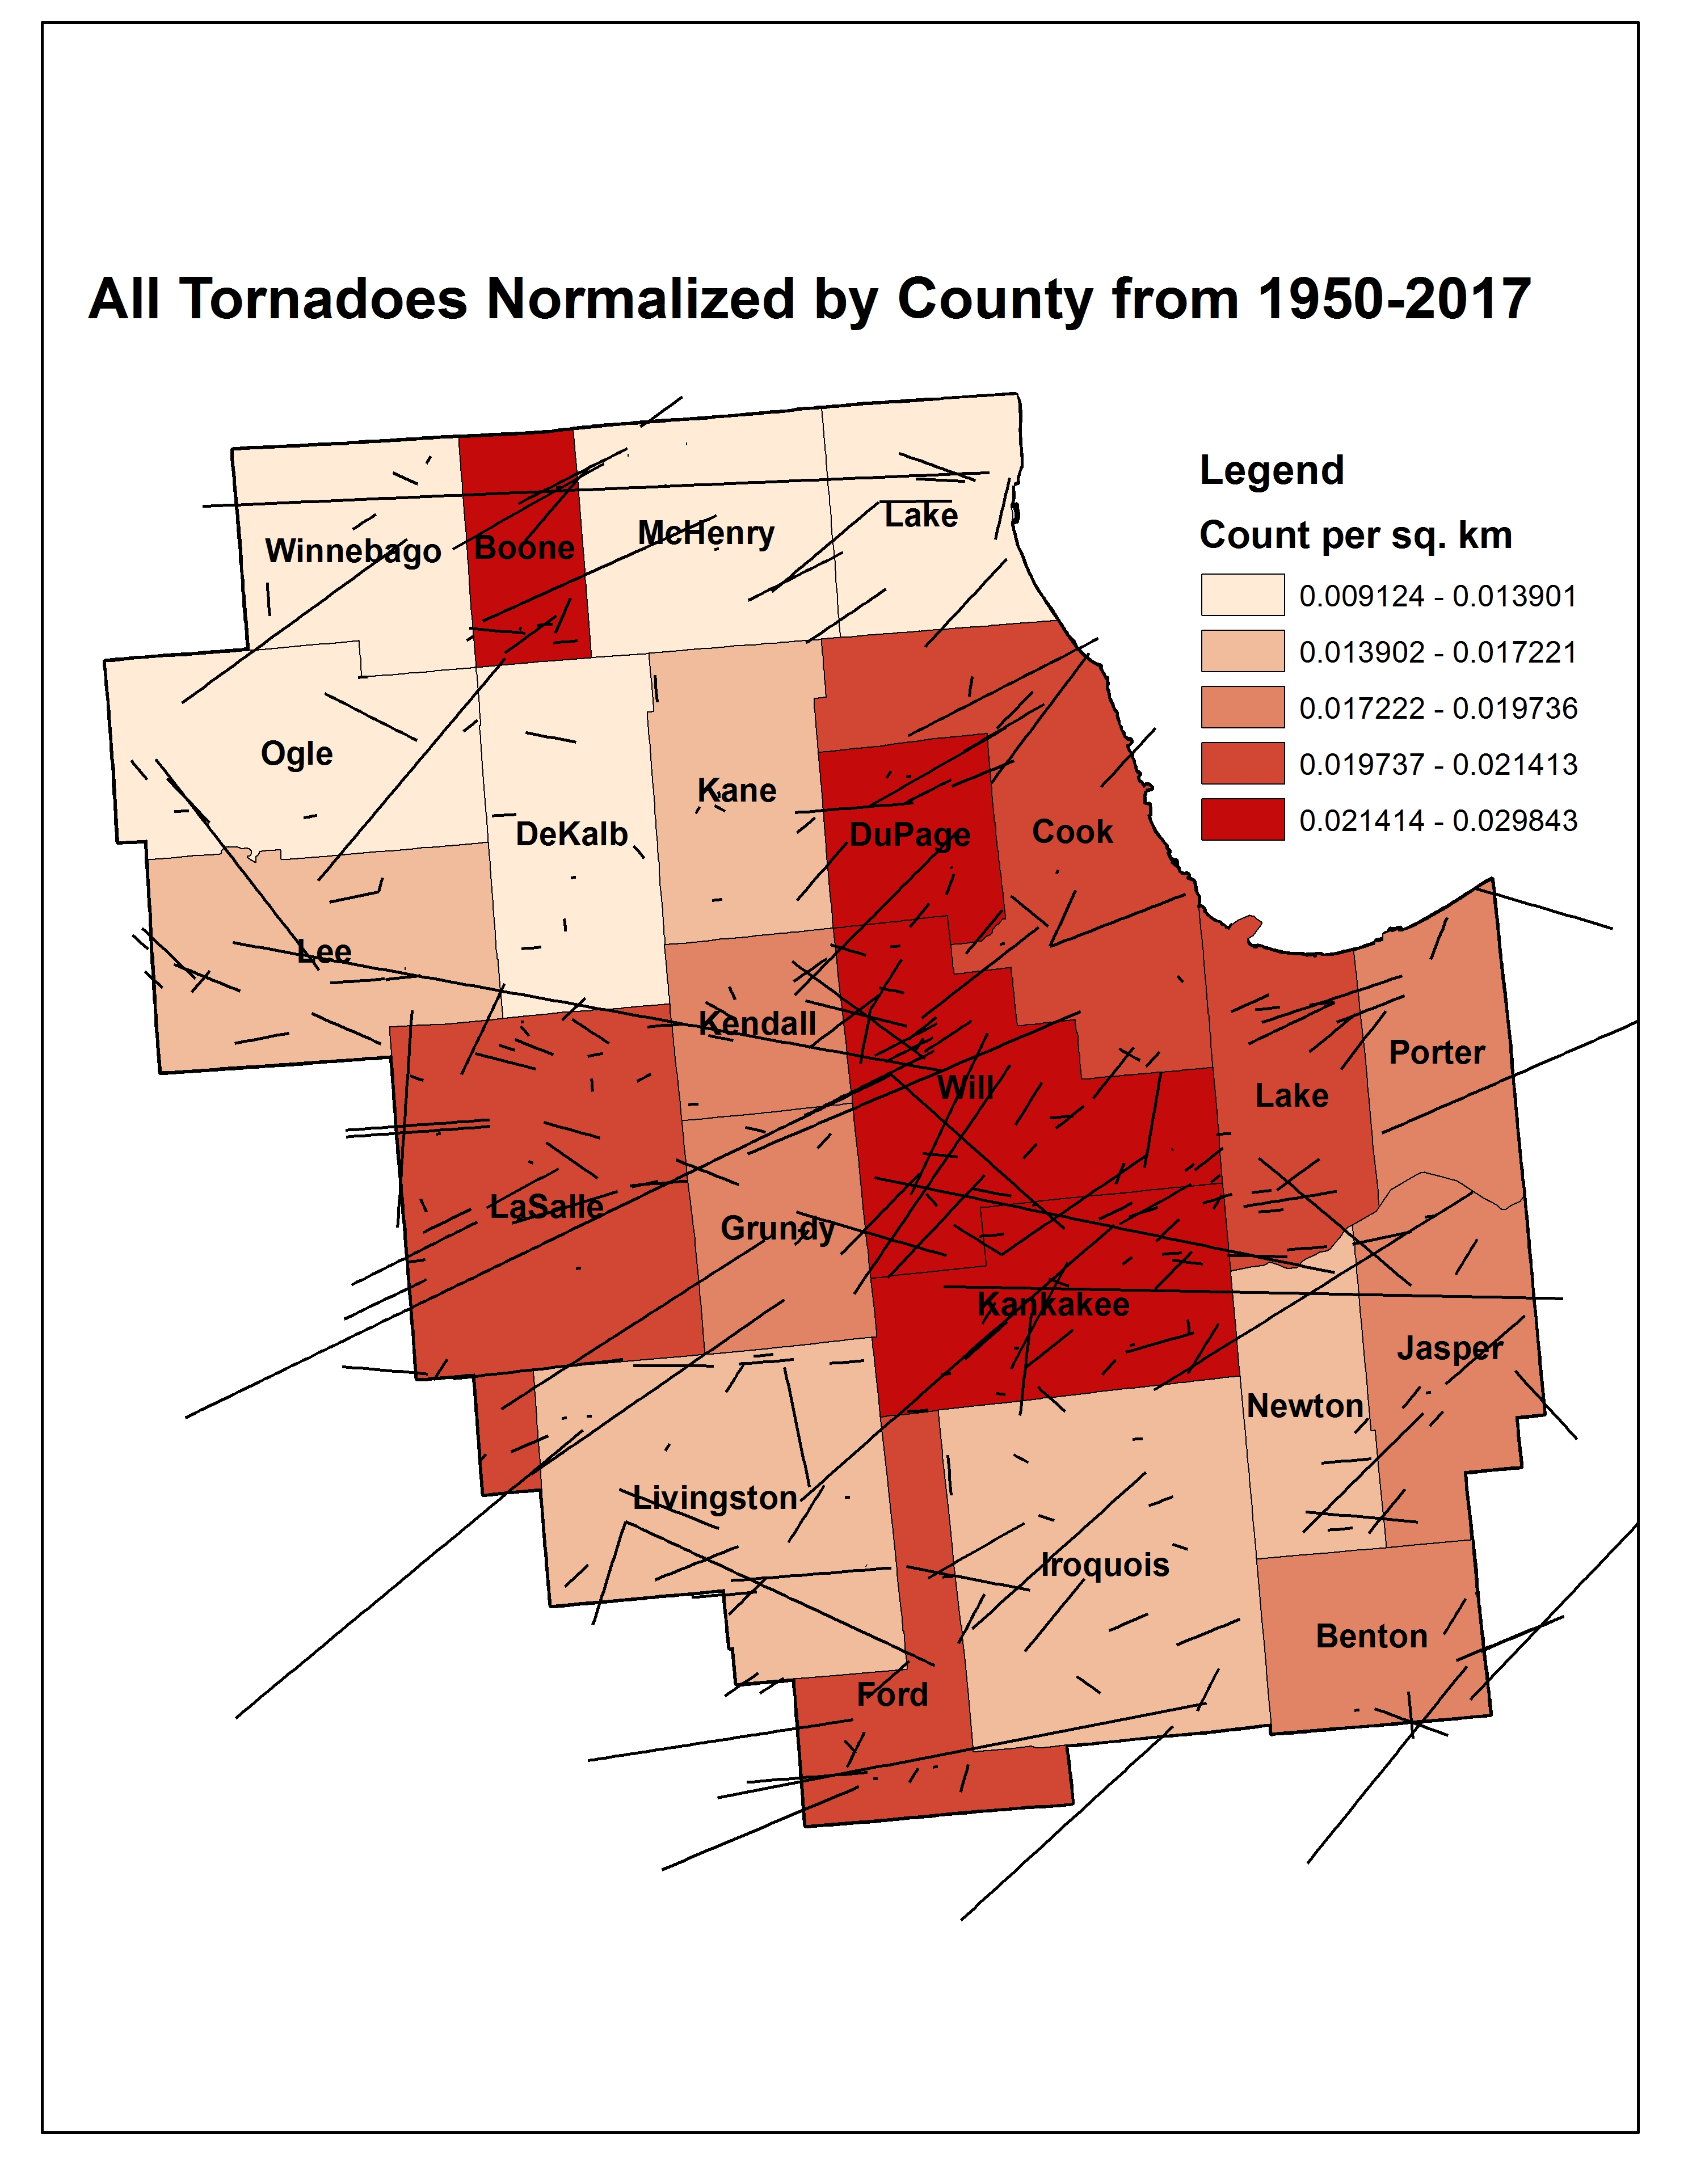 Tornado Normalized by County